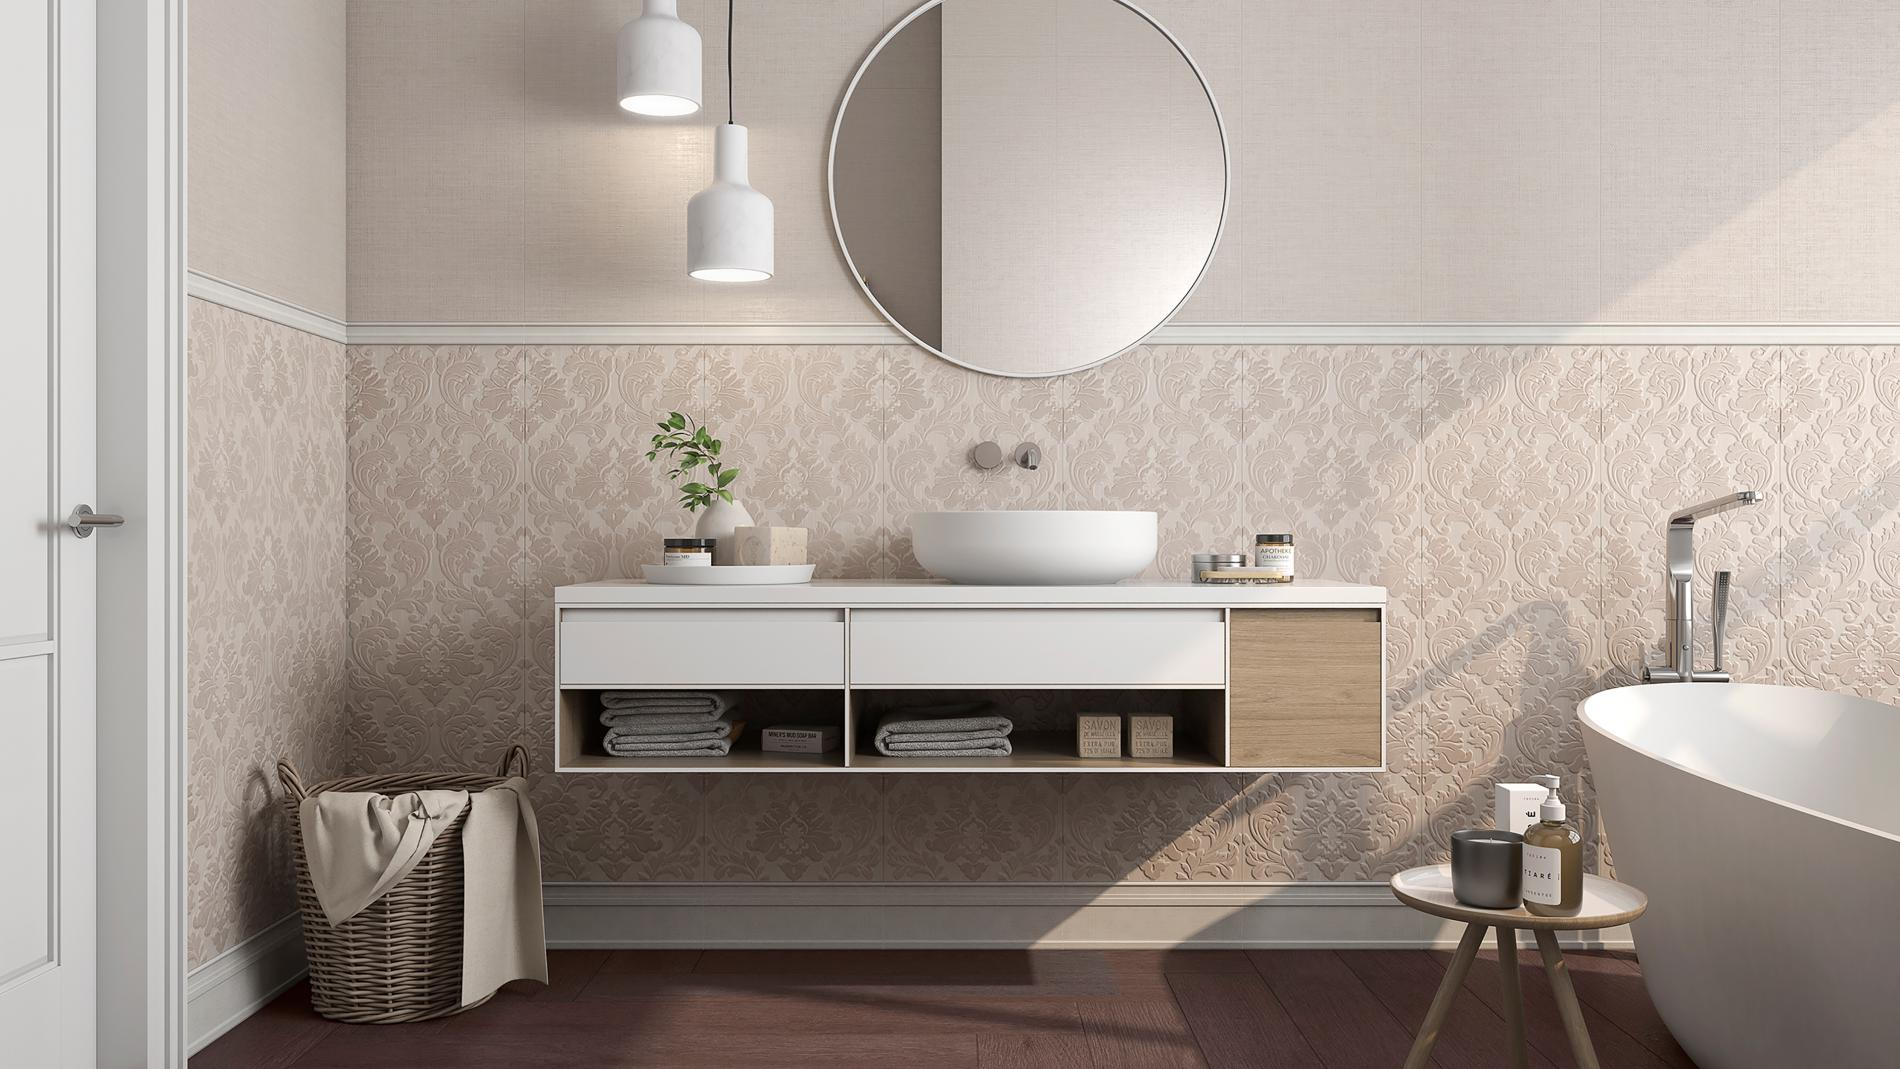 pam1900x625 Tiles dublin waterloo bathrooms commercial contracts ireland supply and fit luxury.jpg